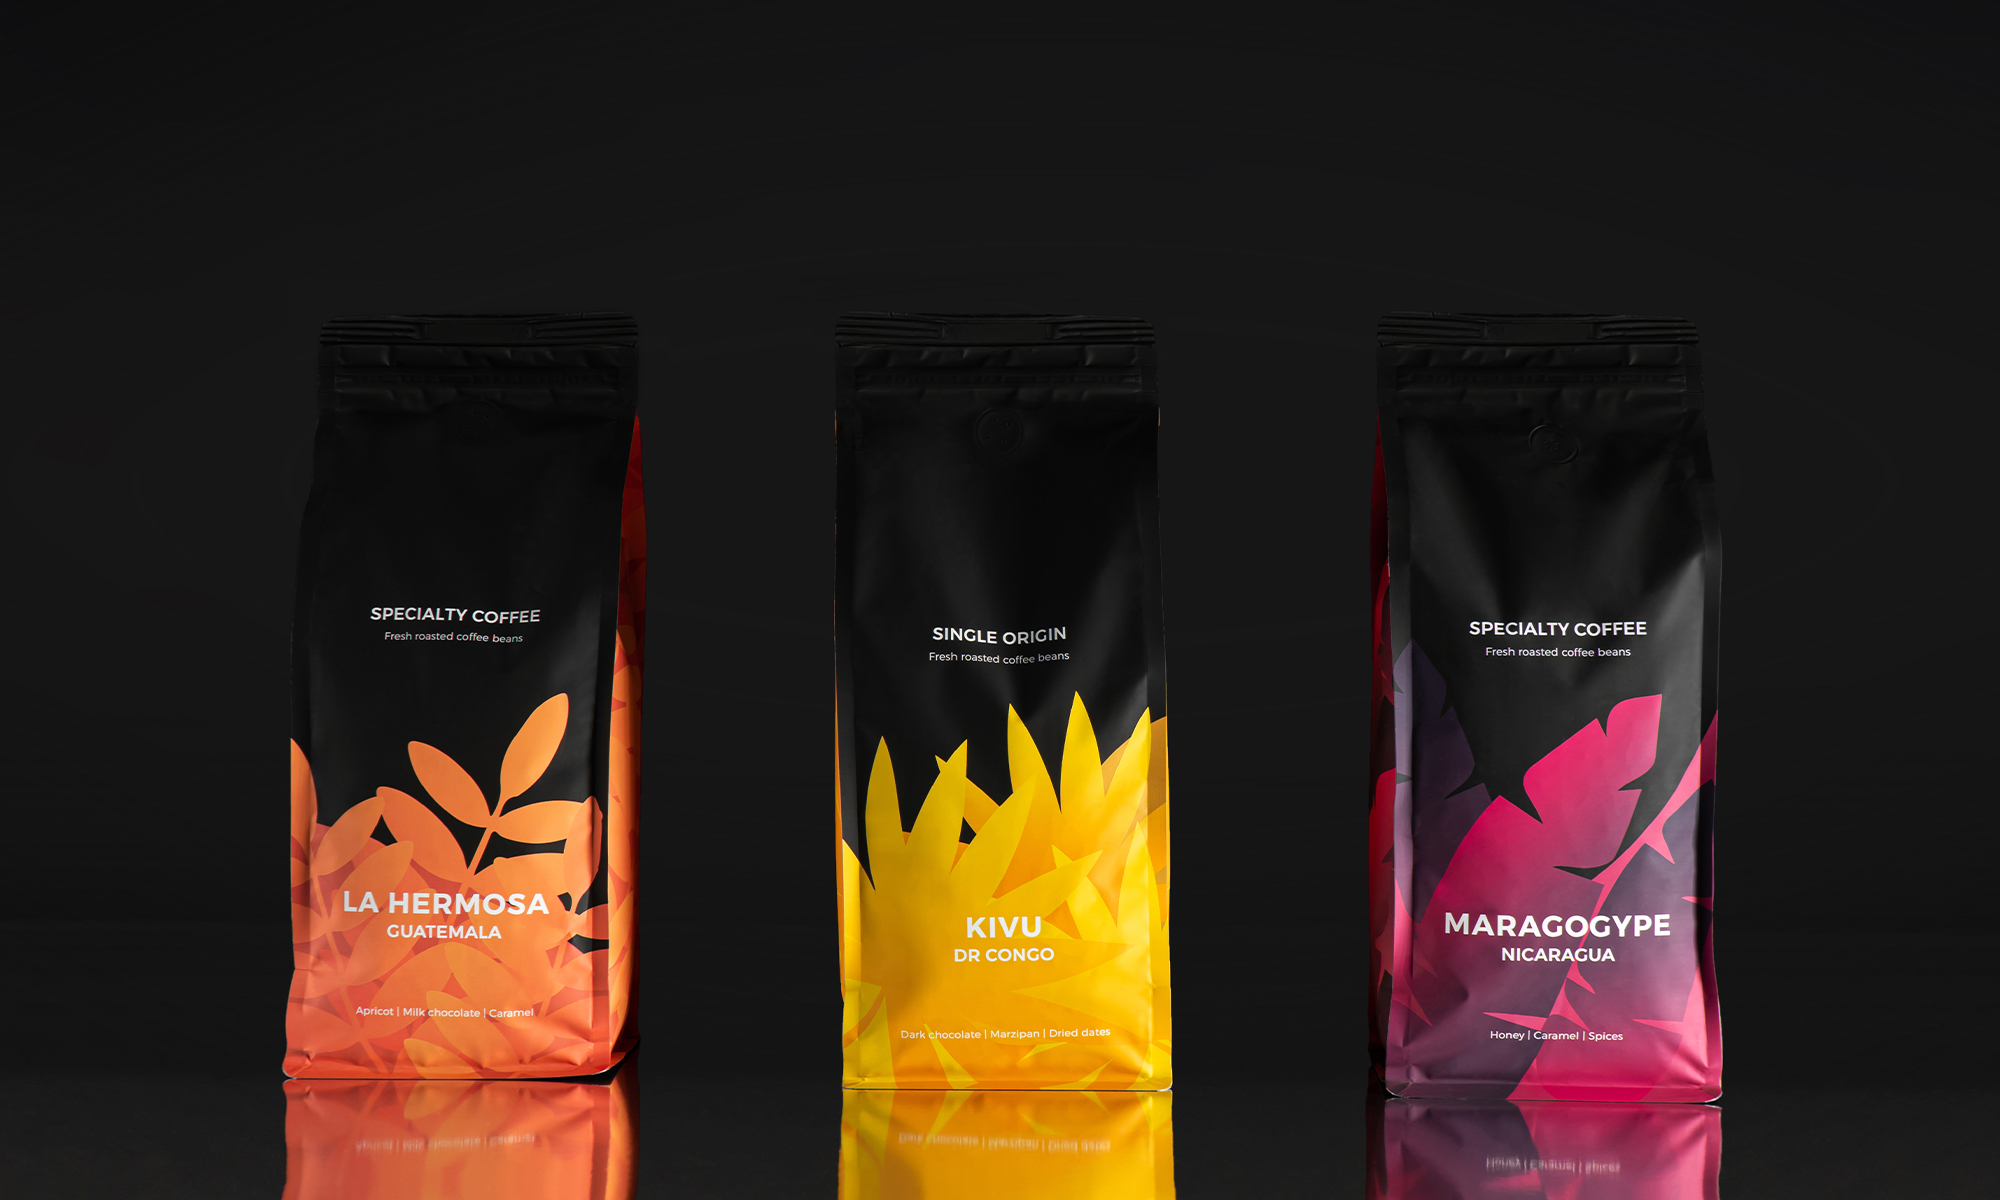 In-house Design Team Redesign of Coffee Mate Group Specialty Coffee Packaging